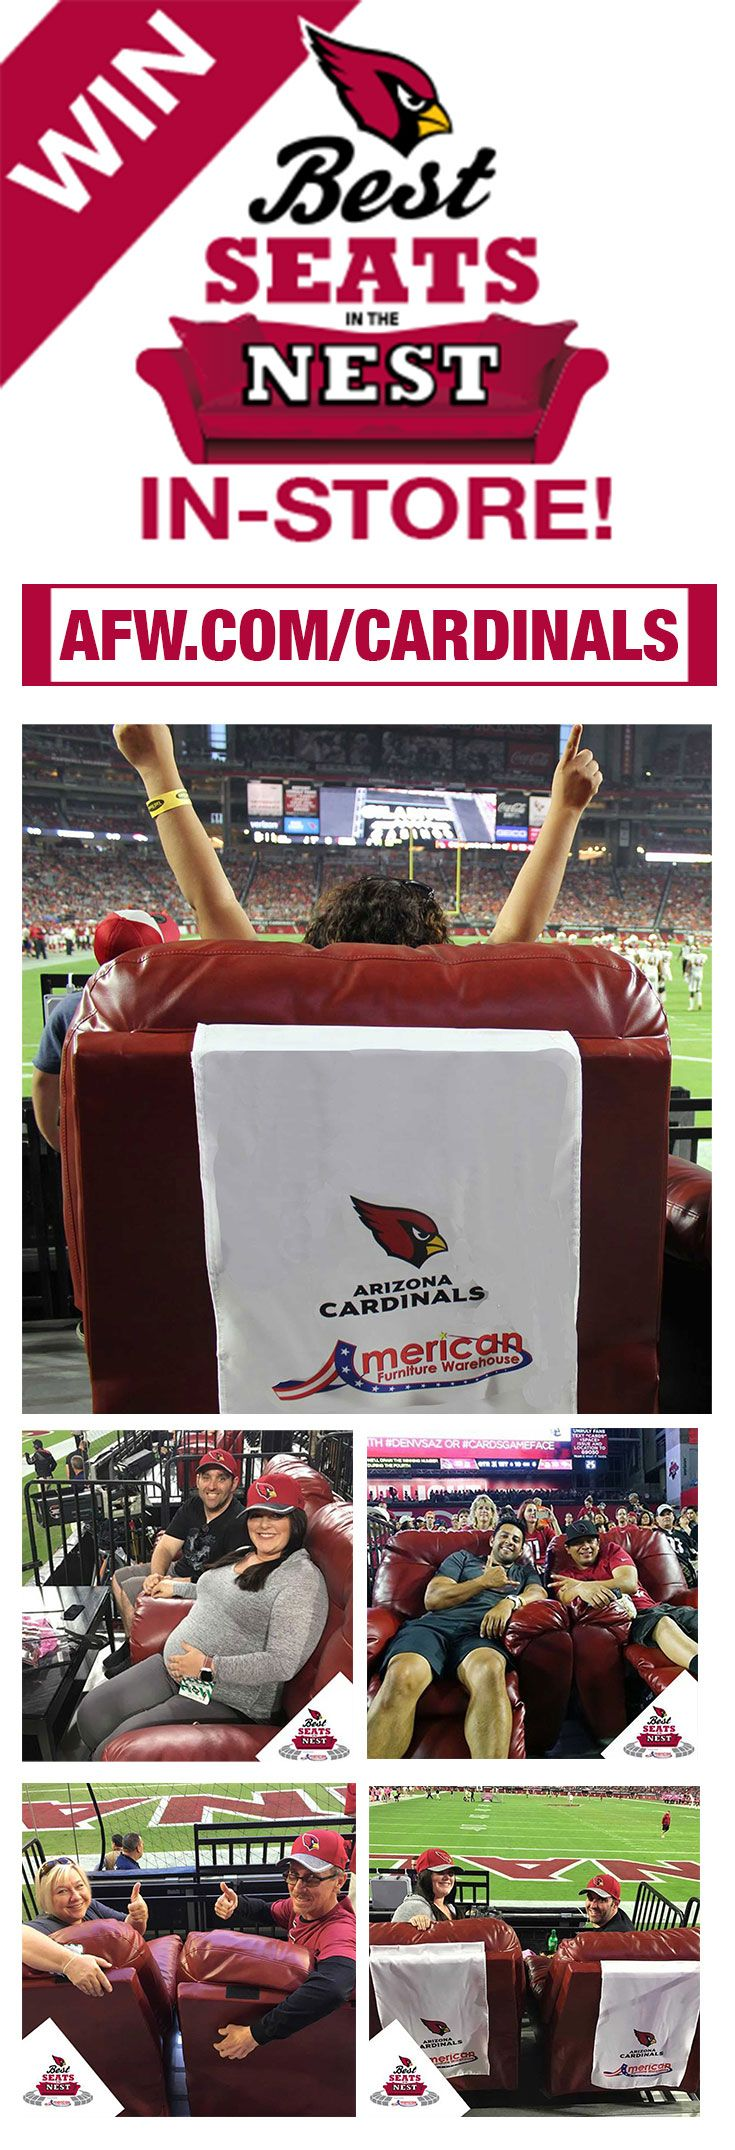 YOU COULD BE NEXT! Visit one of our two AZ stores to enter our Arizona Cardinals Best Seats in the Nest sweepstakes for your chance to win tickets to a home game this season and much, much more! 🏈 Click here for official rules: https://afw.com/cardinals